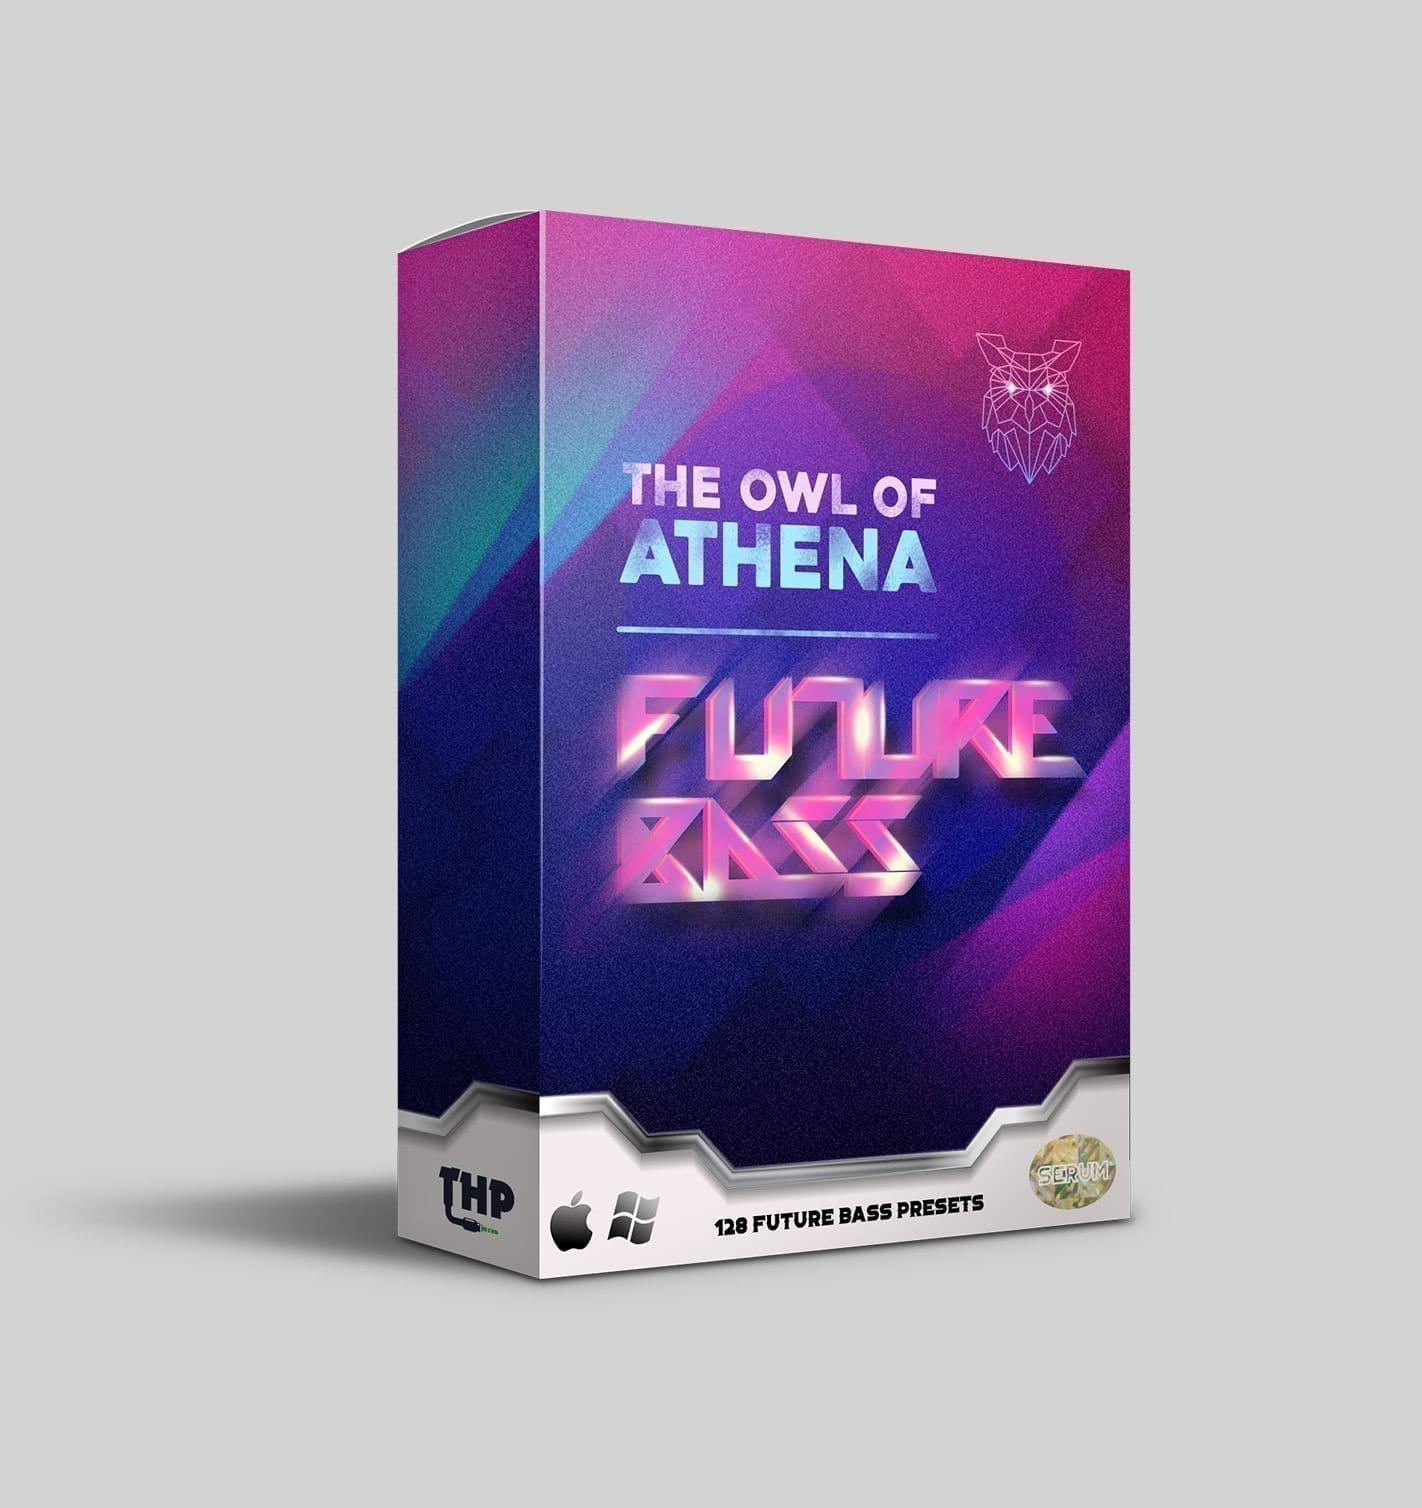 The Owl of Athena Future Bass Presets for Serum